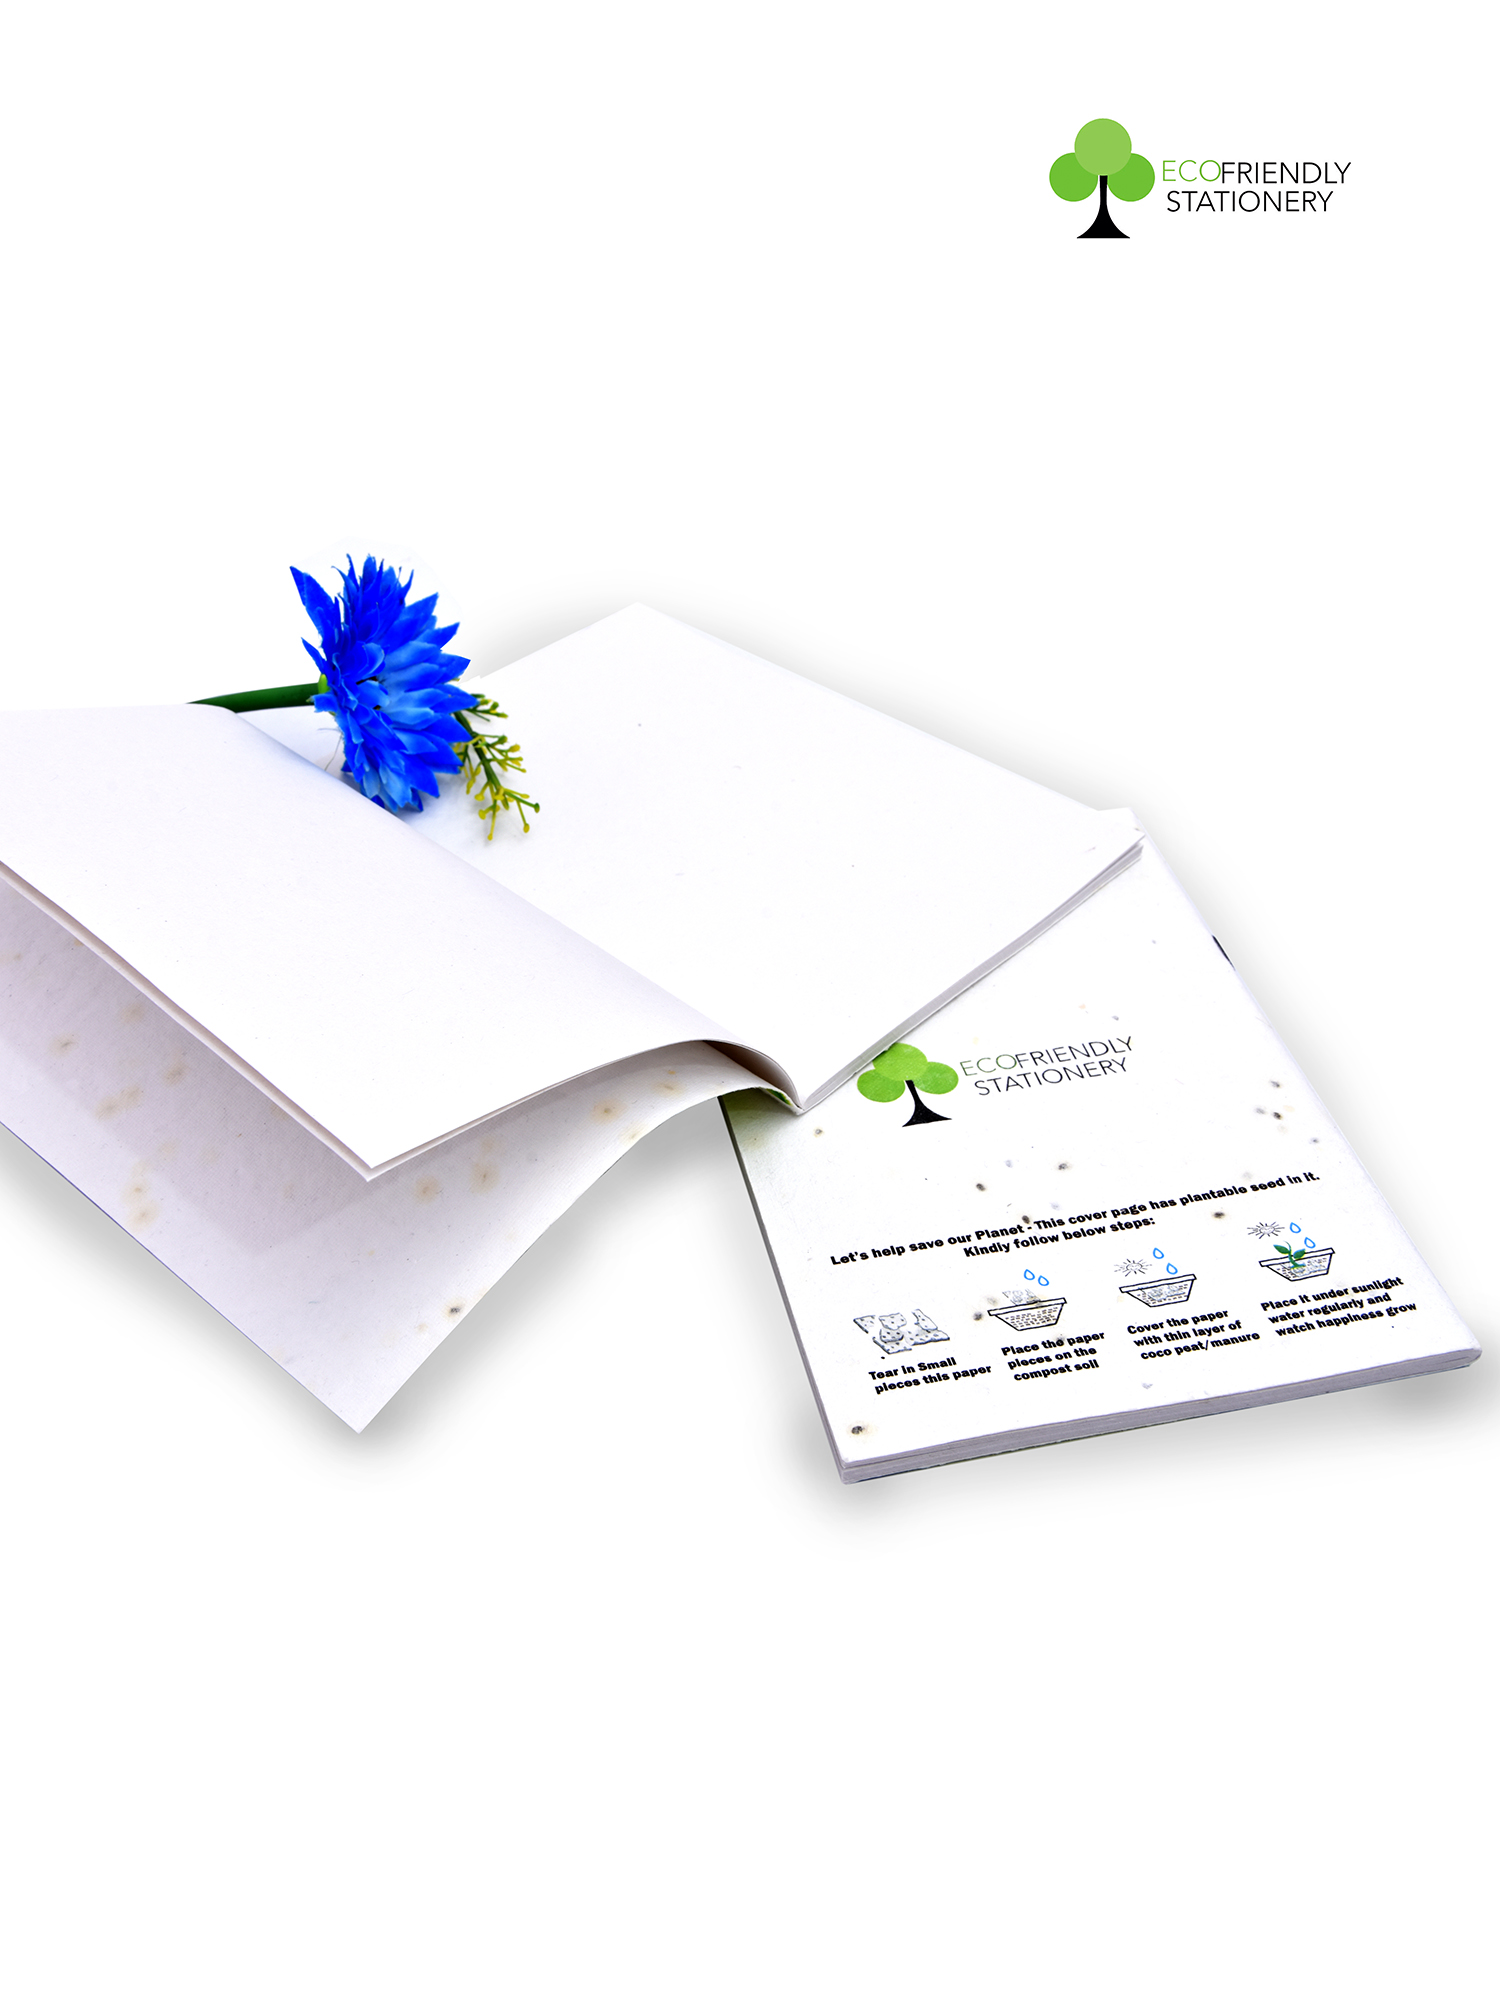 Recycelable Paper NotePad